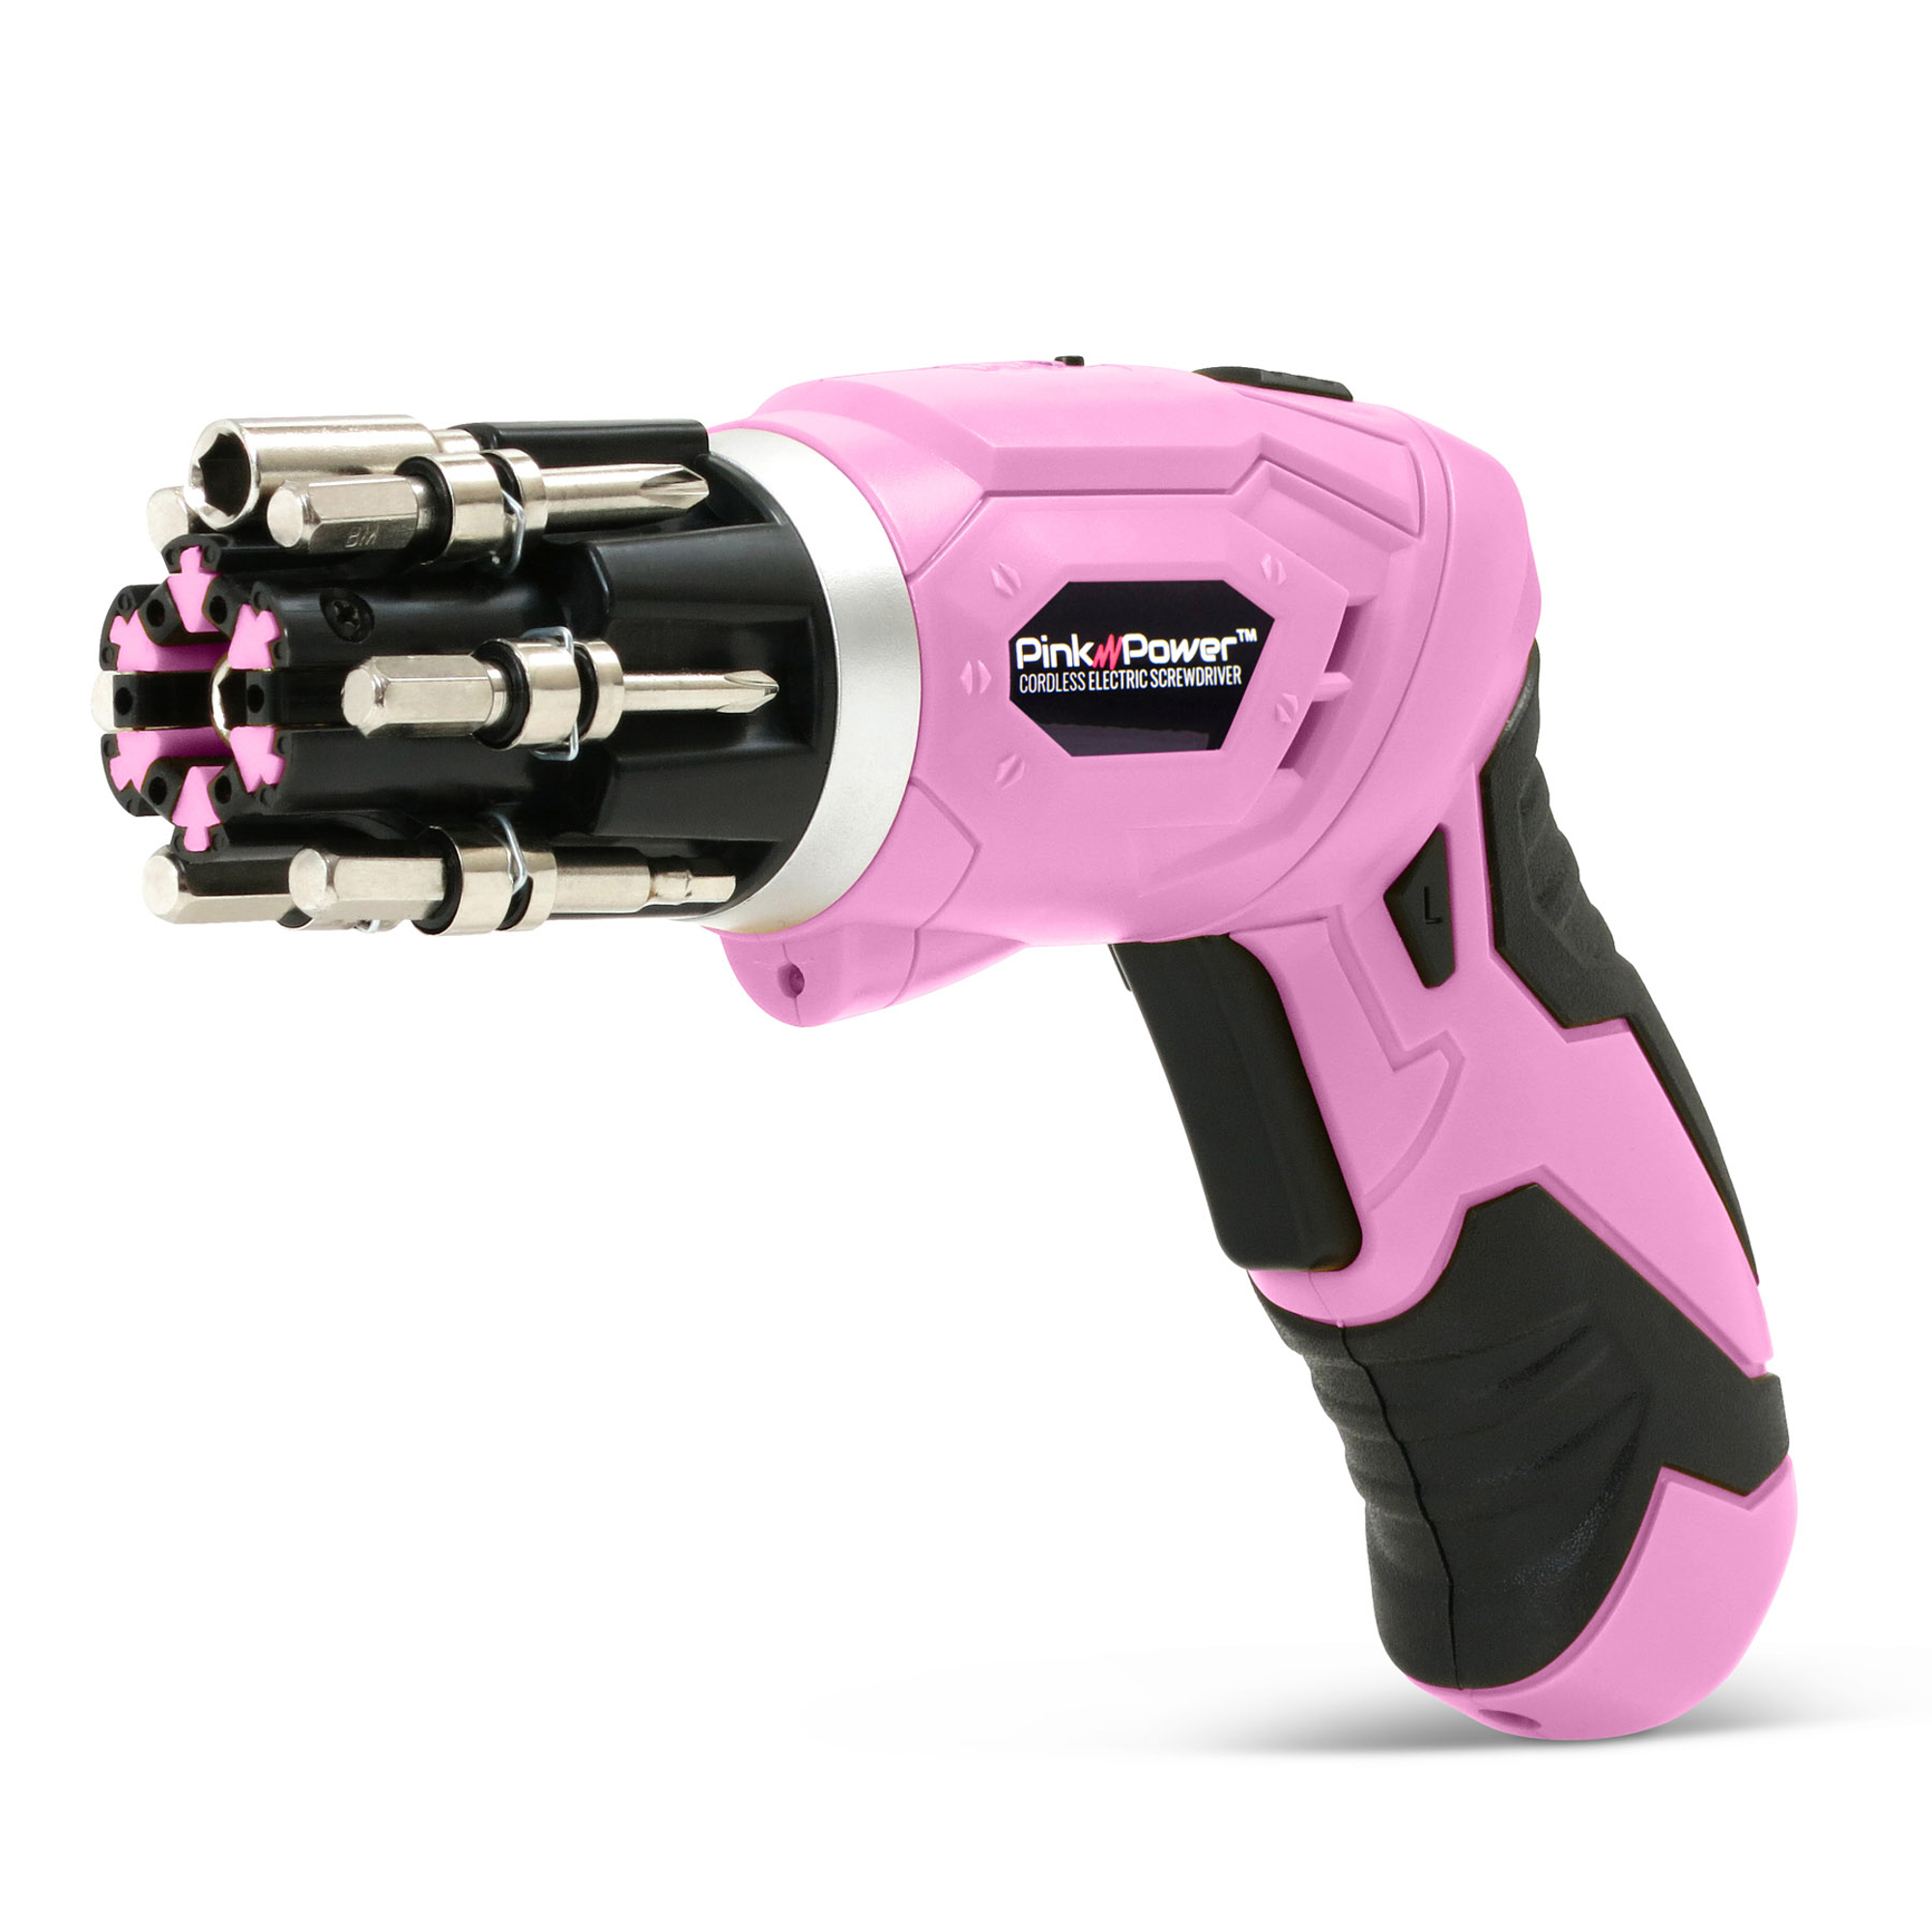 Pink Power 3.6 Volt Rechargeable Cordless Electric Screwdriver Kit with Built-in Bit Set and Bubble Level